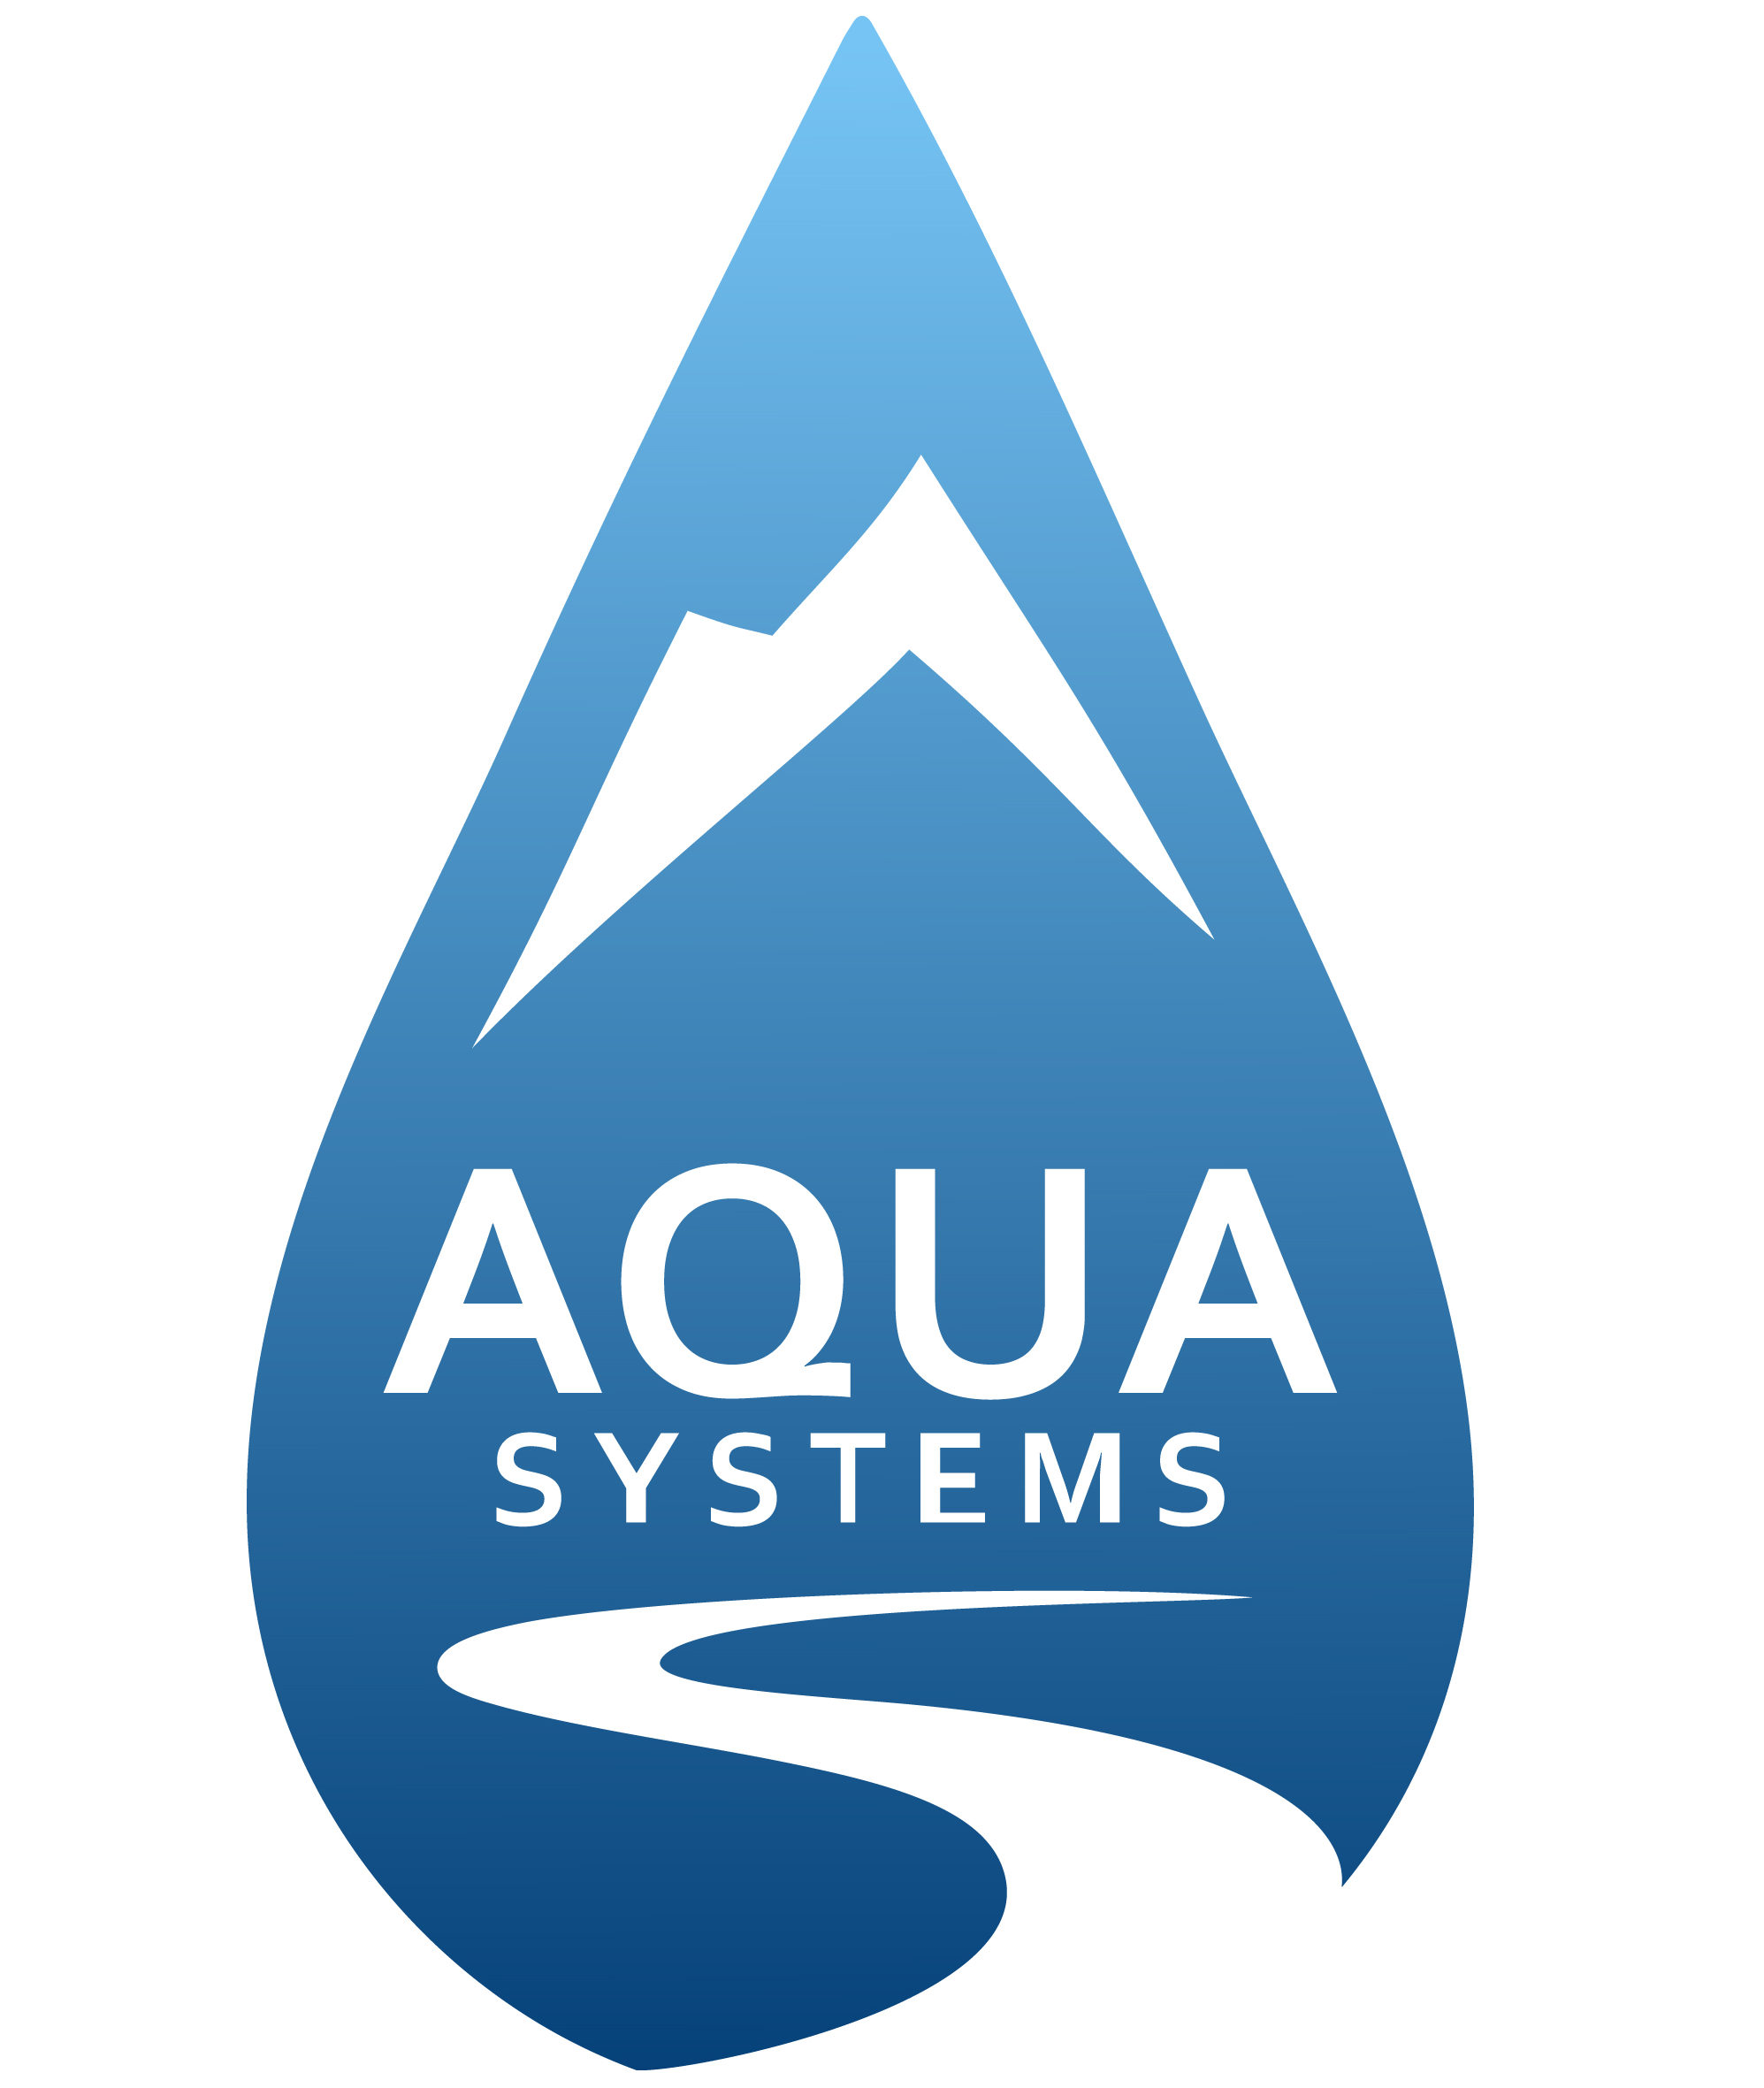 cropped-New-aqua-logo.jpg